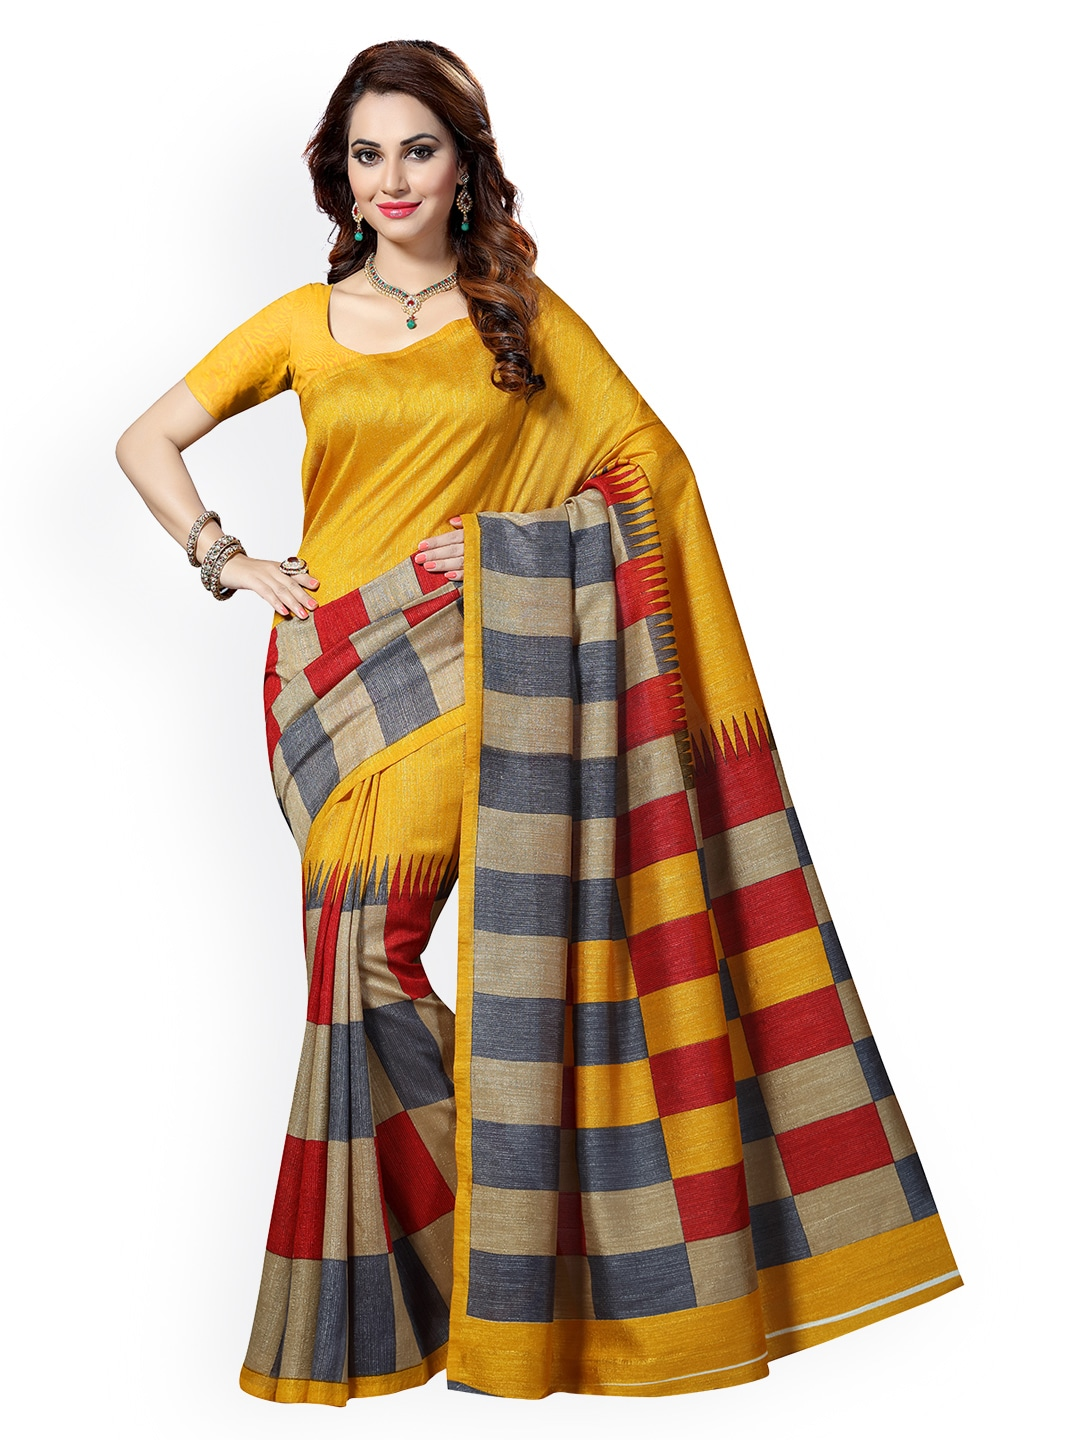 d741a3595f Checked Saree - Buy Elegant Checked Sarees Collection Online